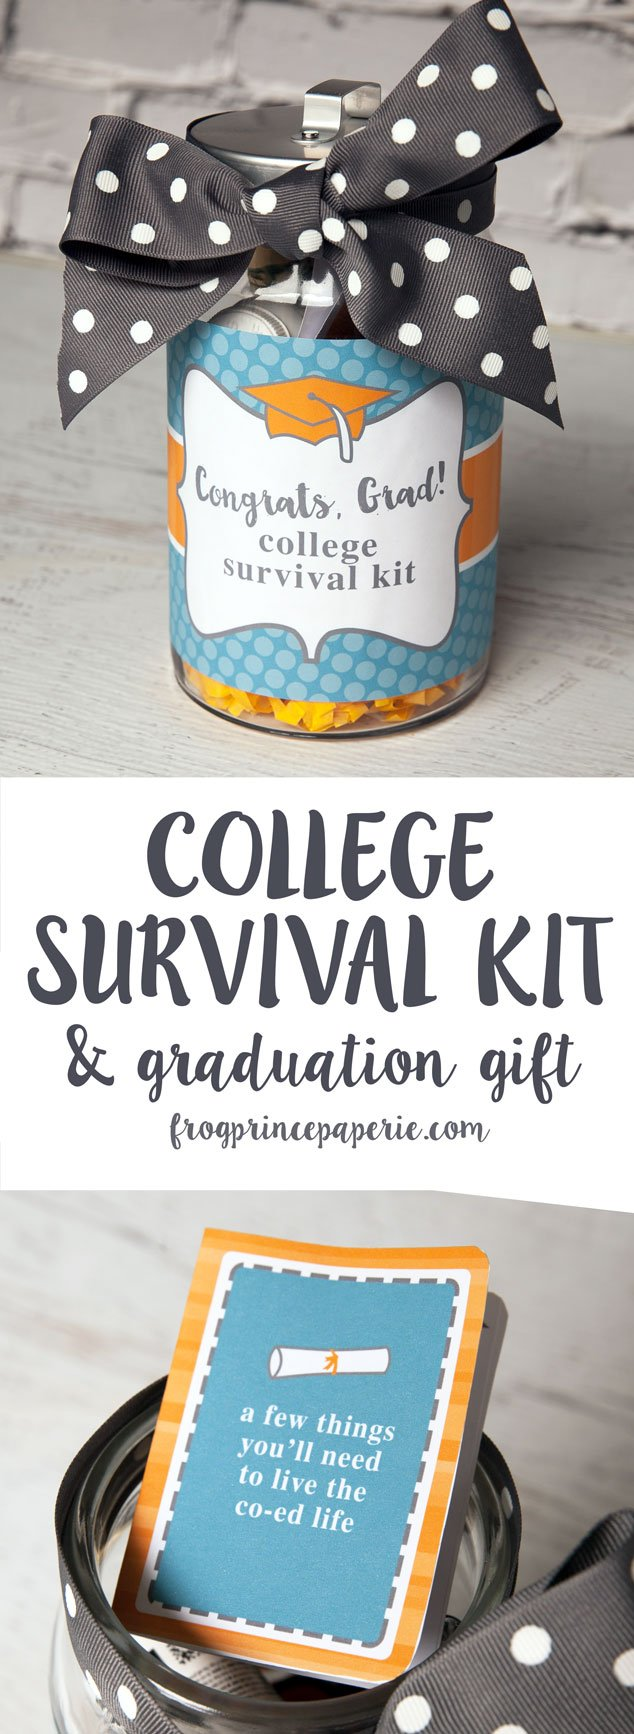 College-Survival-Kit-DIY-for-High-School-Graduation-Gift